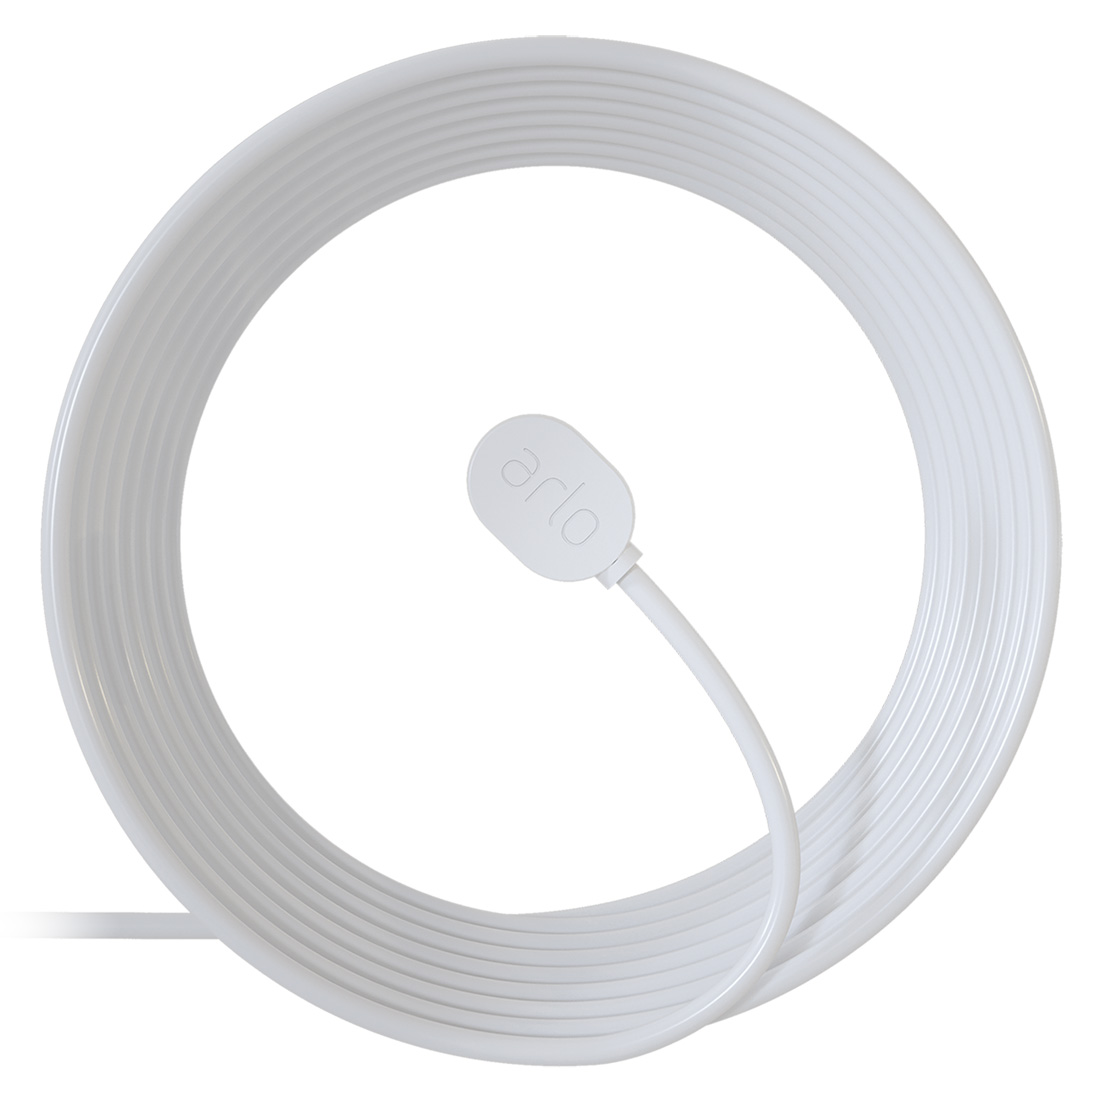 Arlo Ultra Outdoor Magnetic Charging Cable VMA5600C